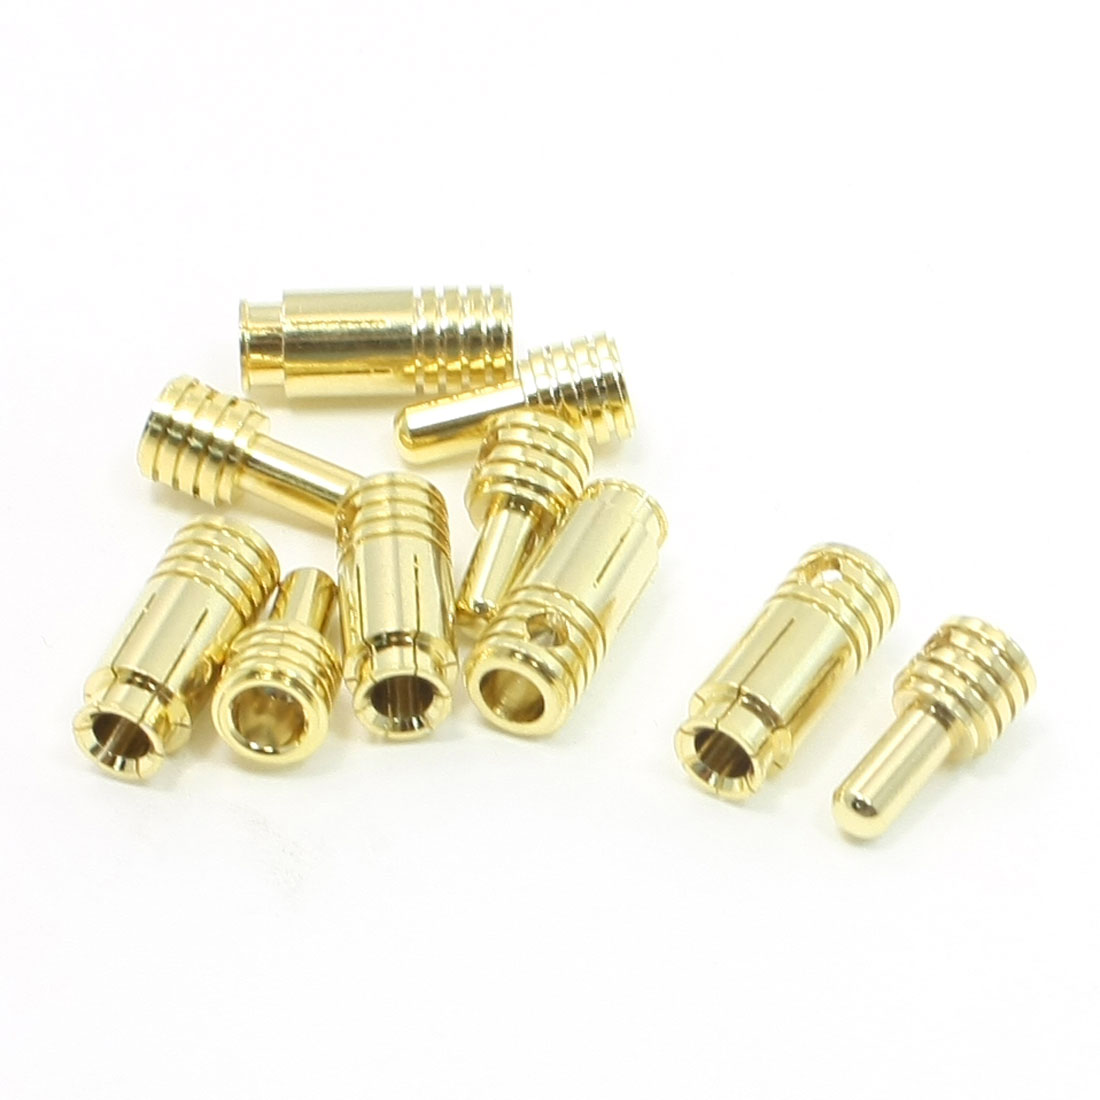 5 Pairs Gold Tone Metal RC Male Female 3.5mm Inner Dia Connectors